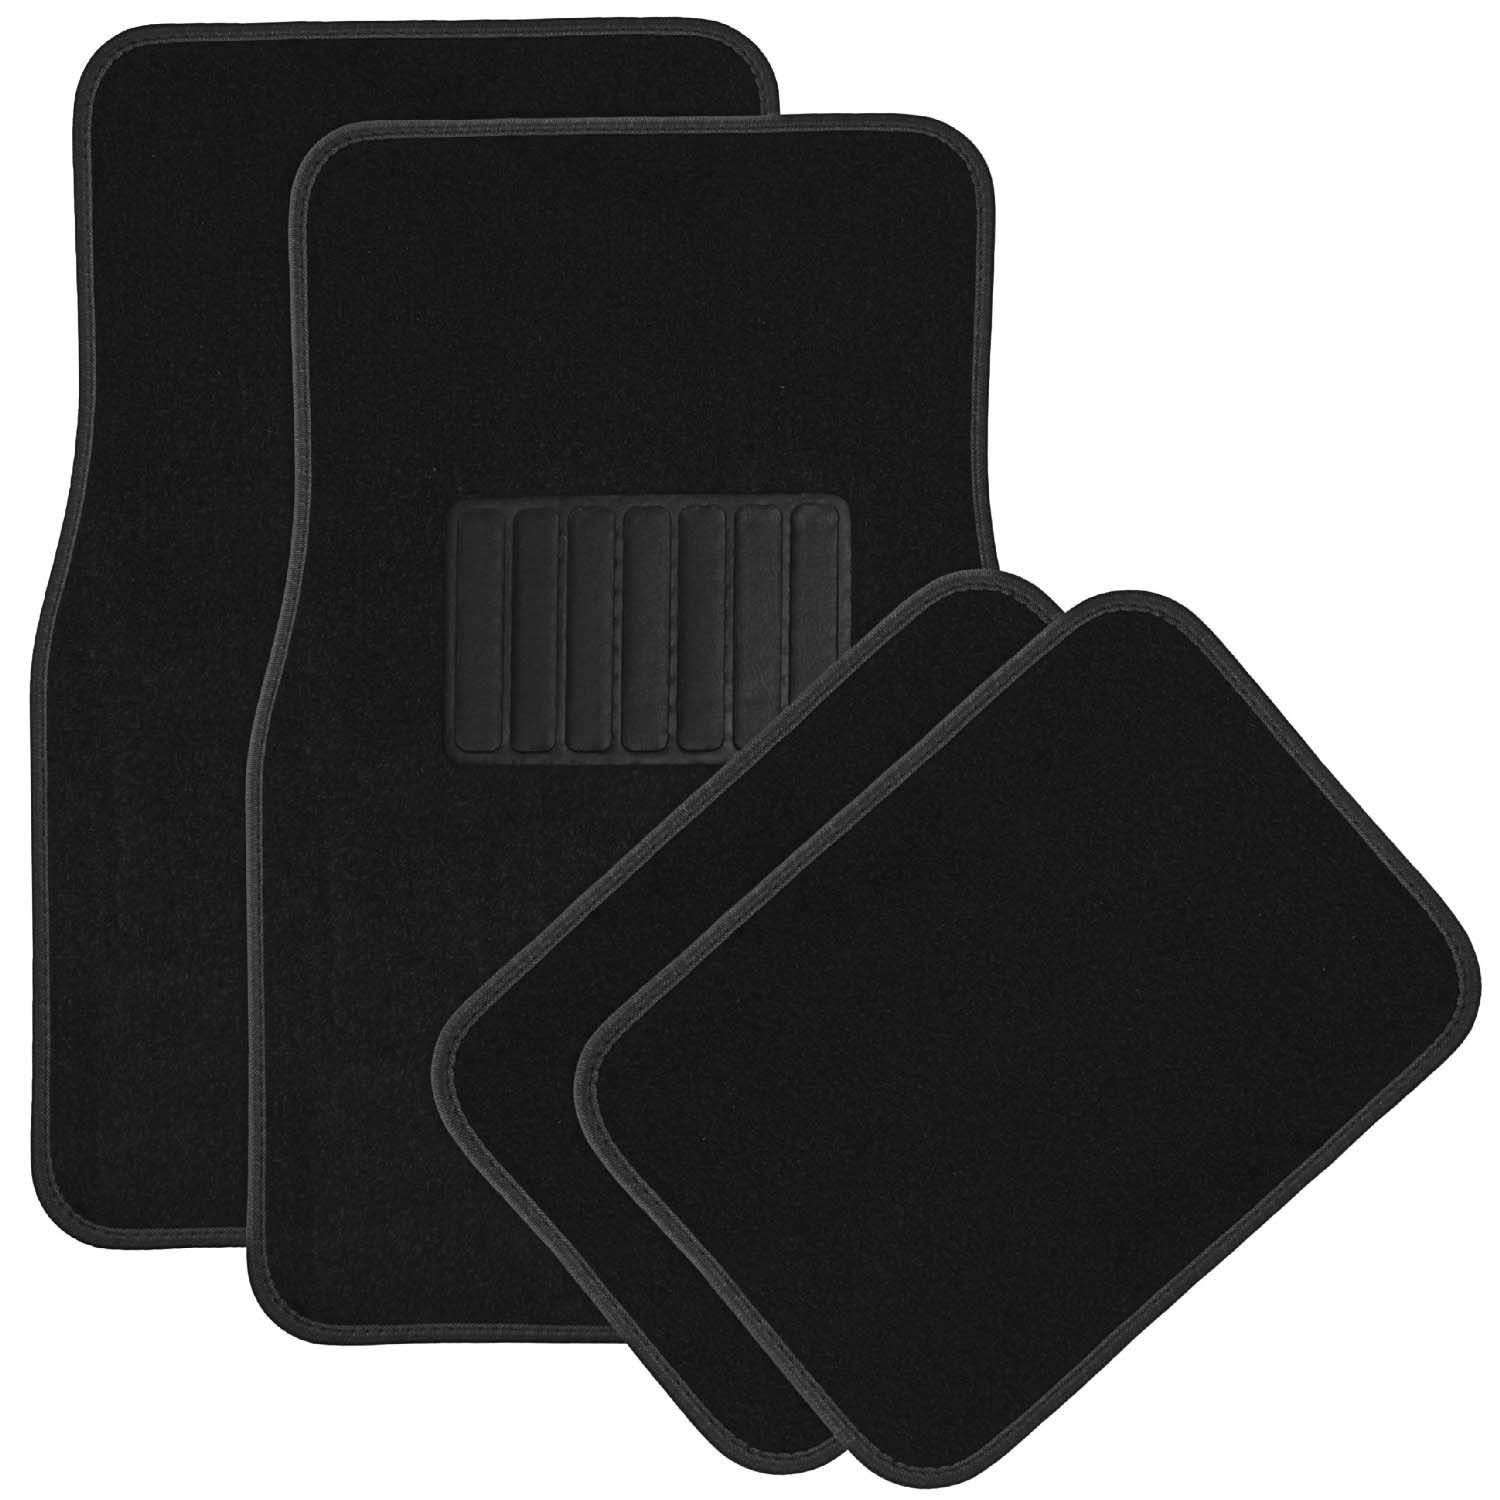 4 Piece Full Set Heavy Duty Carpeted Floor Mats, Universal Fit Car, SUV, & Truck by Stinger